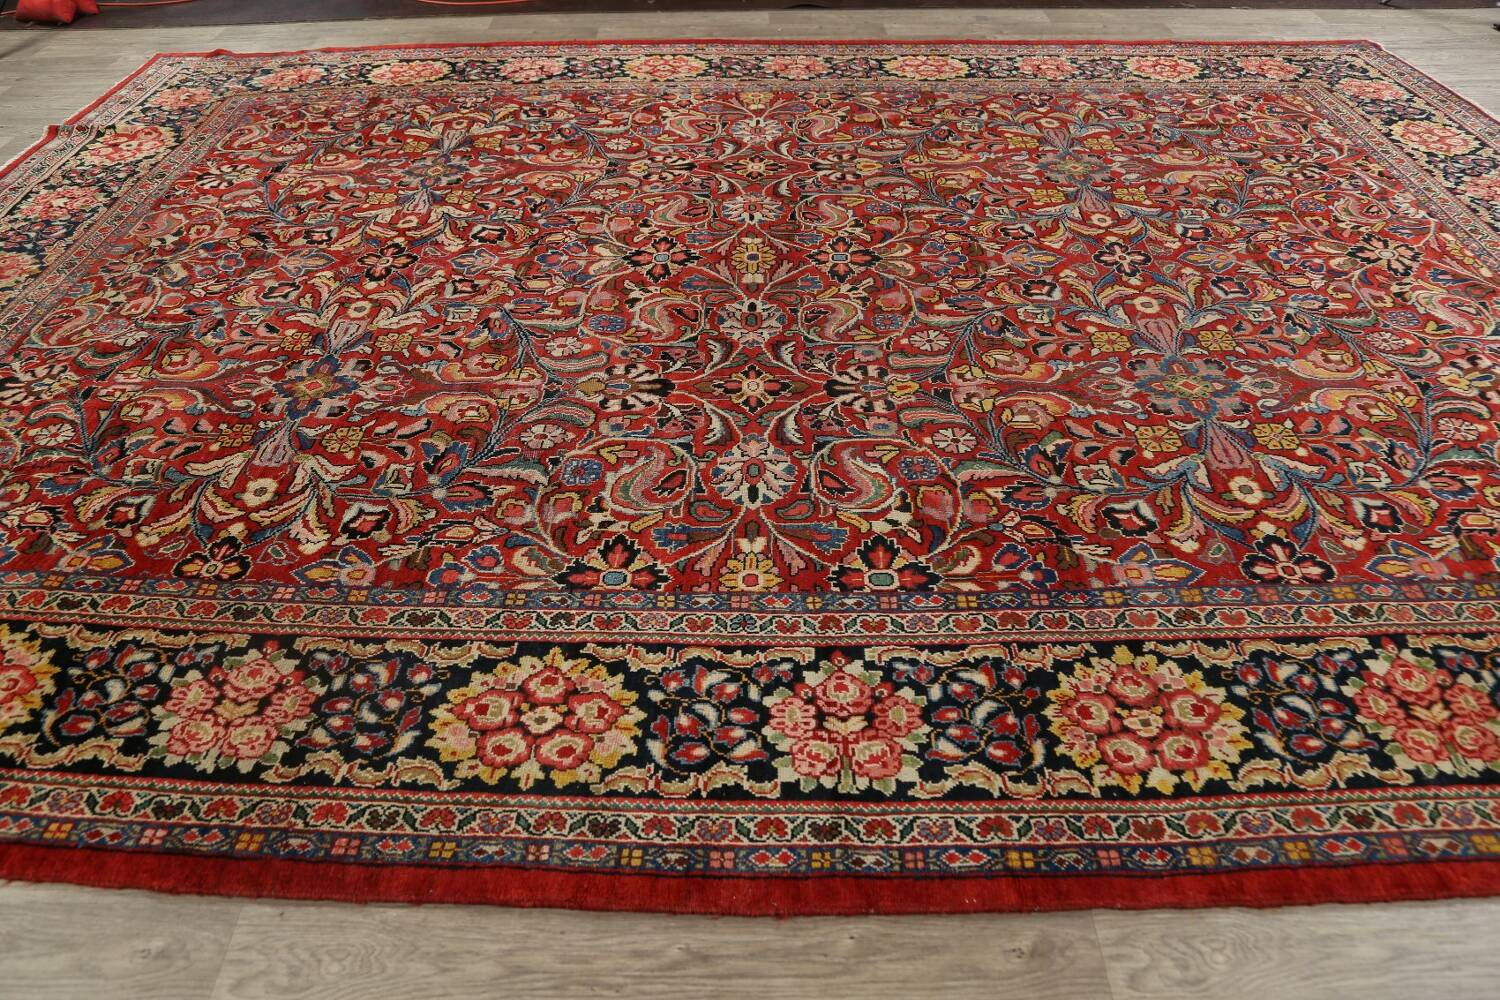 Antique Vegetable Dye Sultanabad Persian Area Rug 10x14 image 19